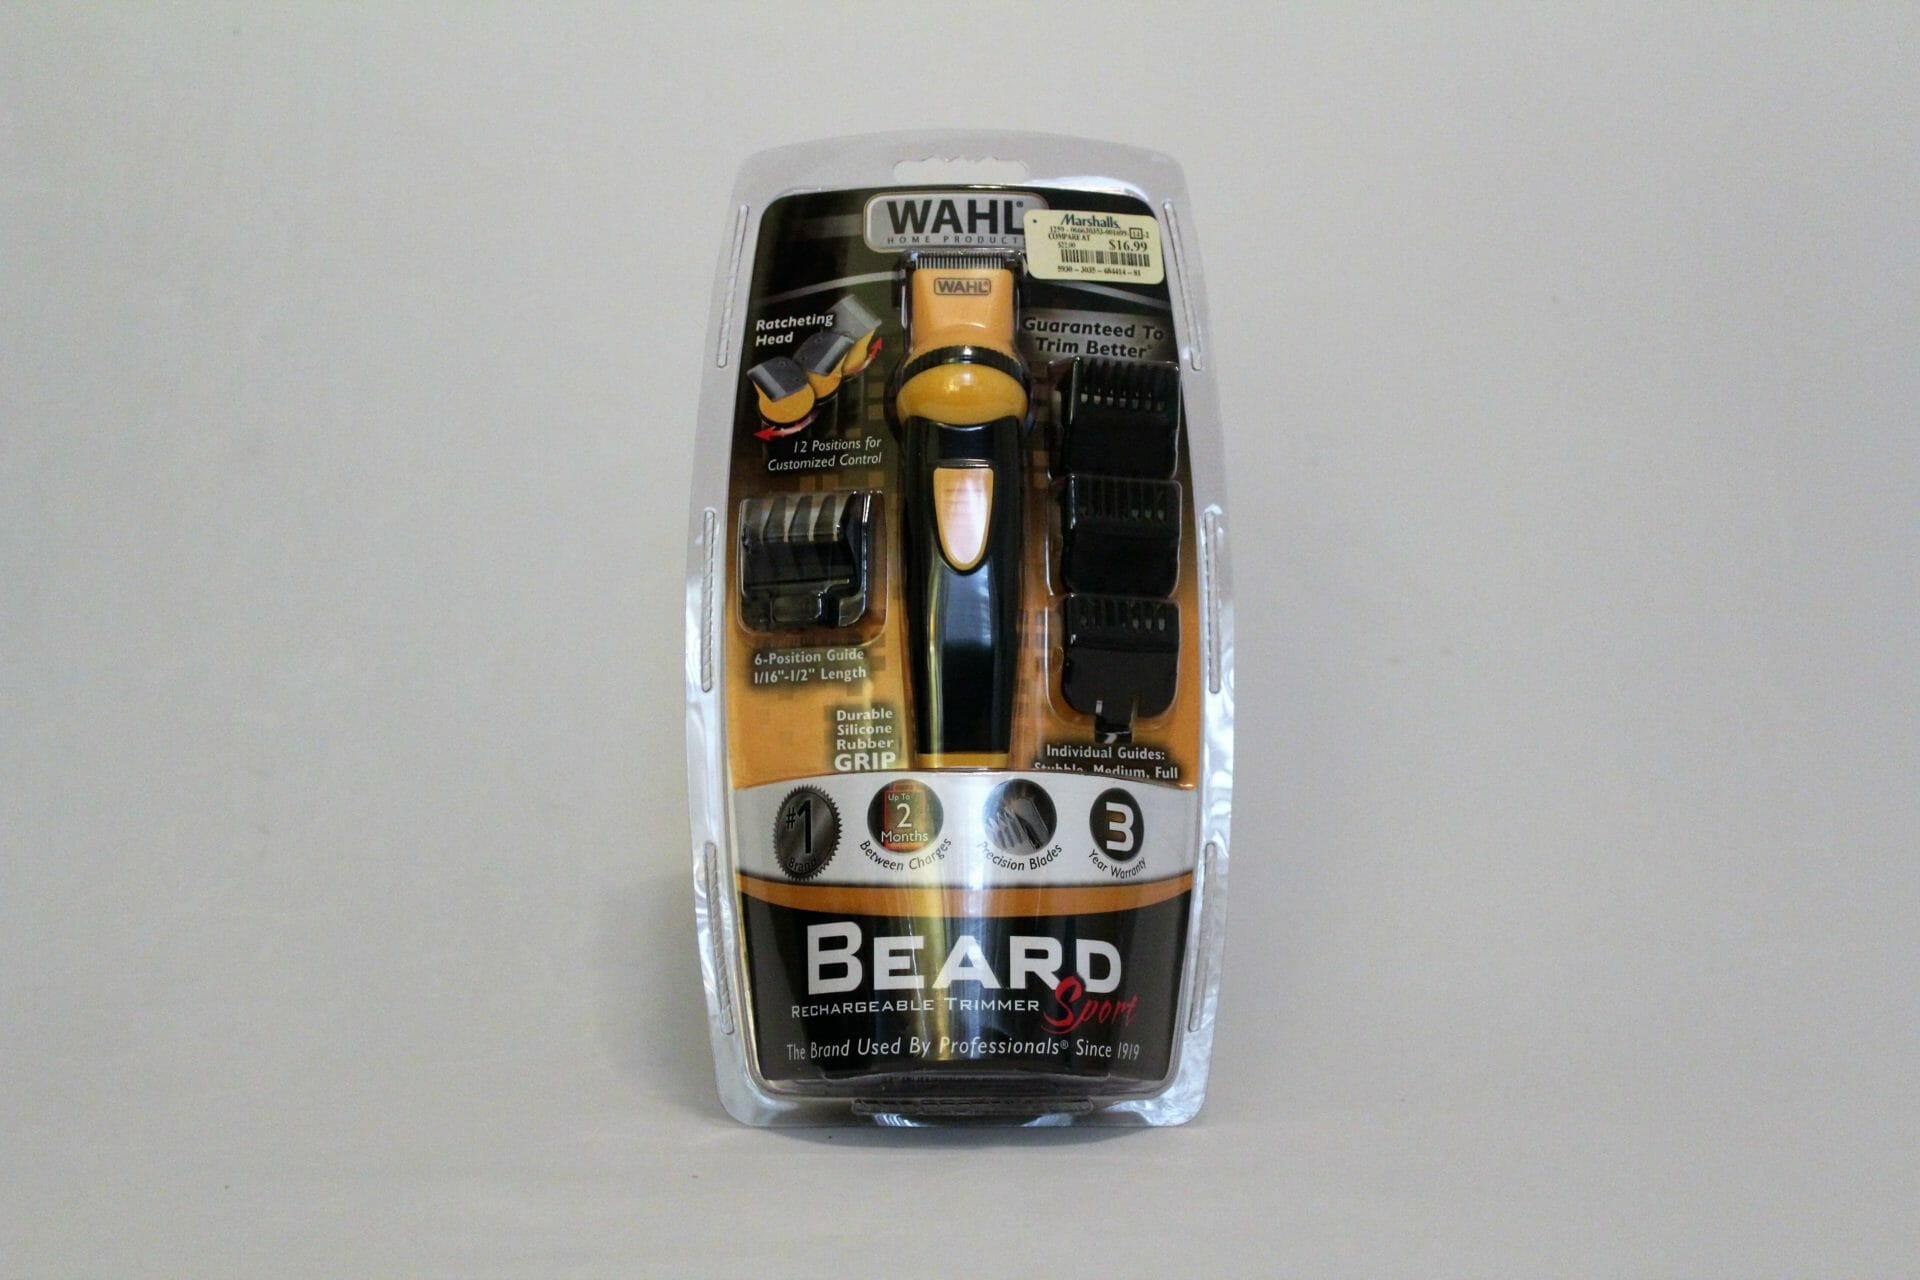 wahl beard rechargeable trimmer sport the brand used by. Black Bedroom Furniture Sets. Home Design Ideas